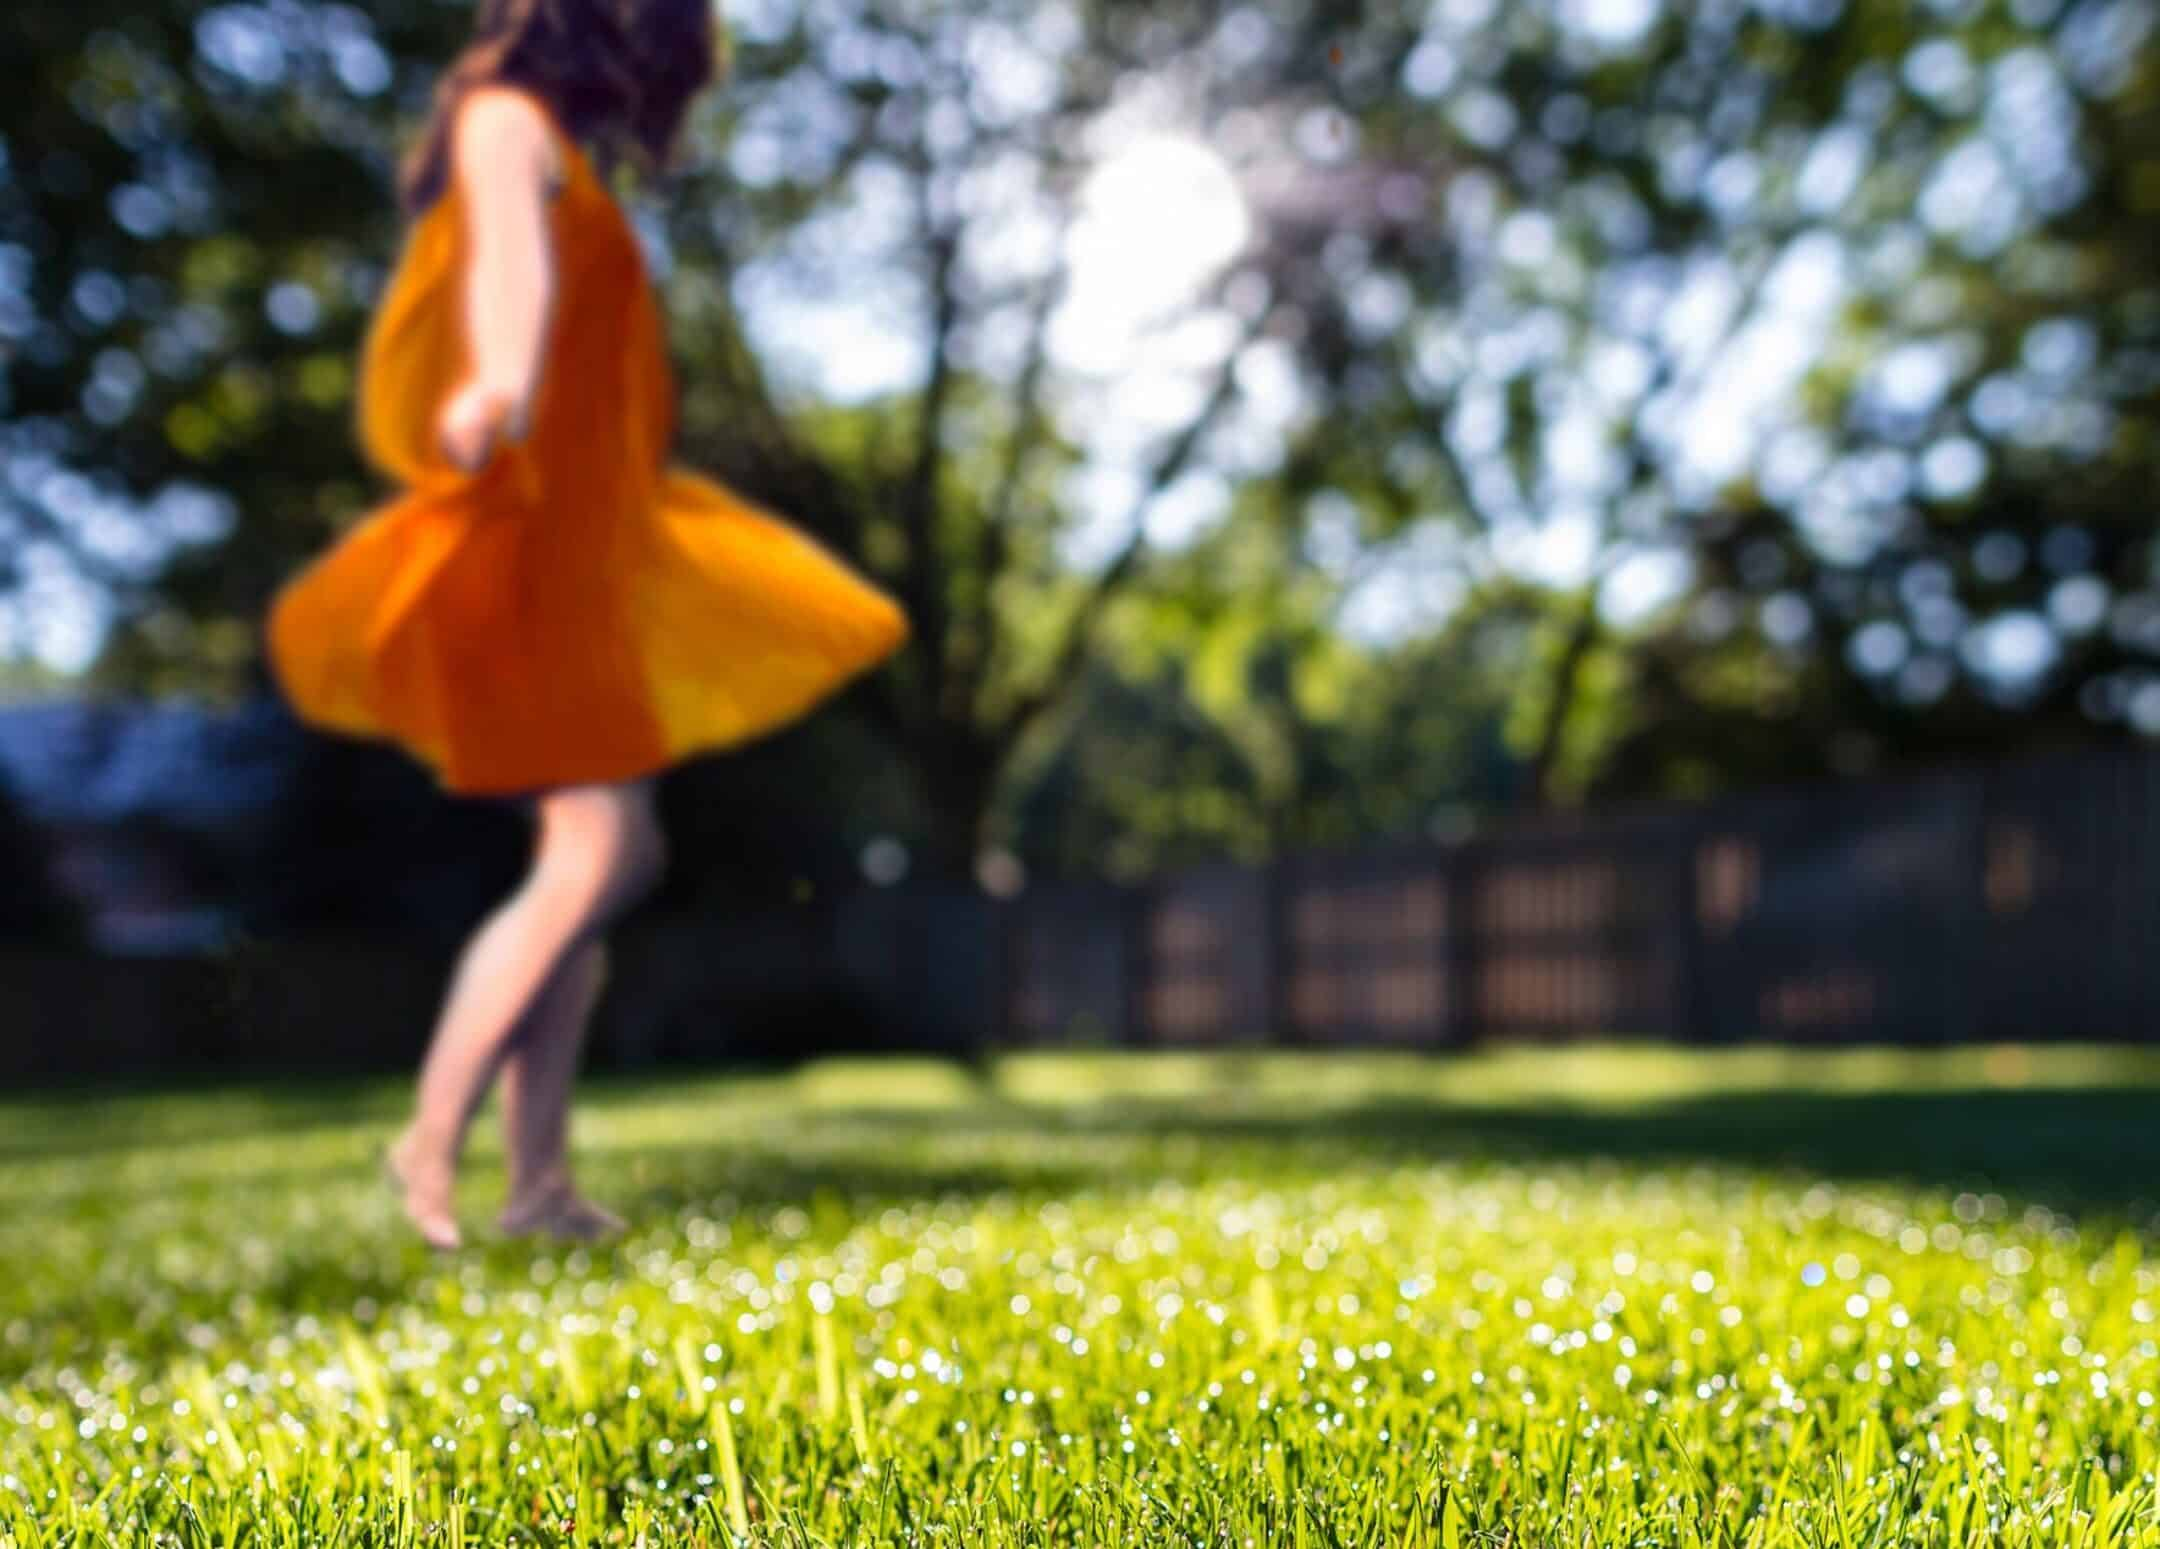 Dance barefoot in the grass